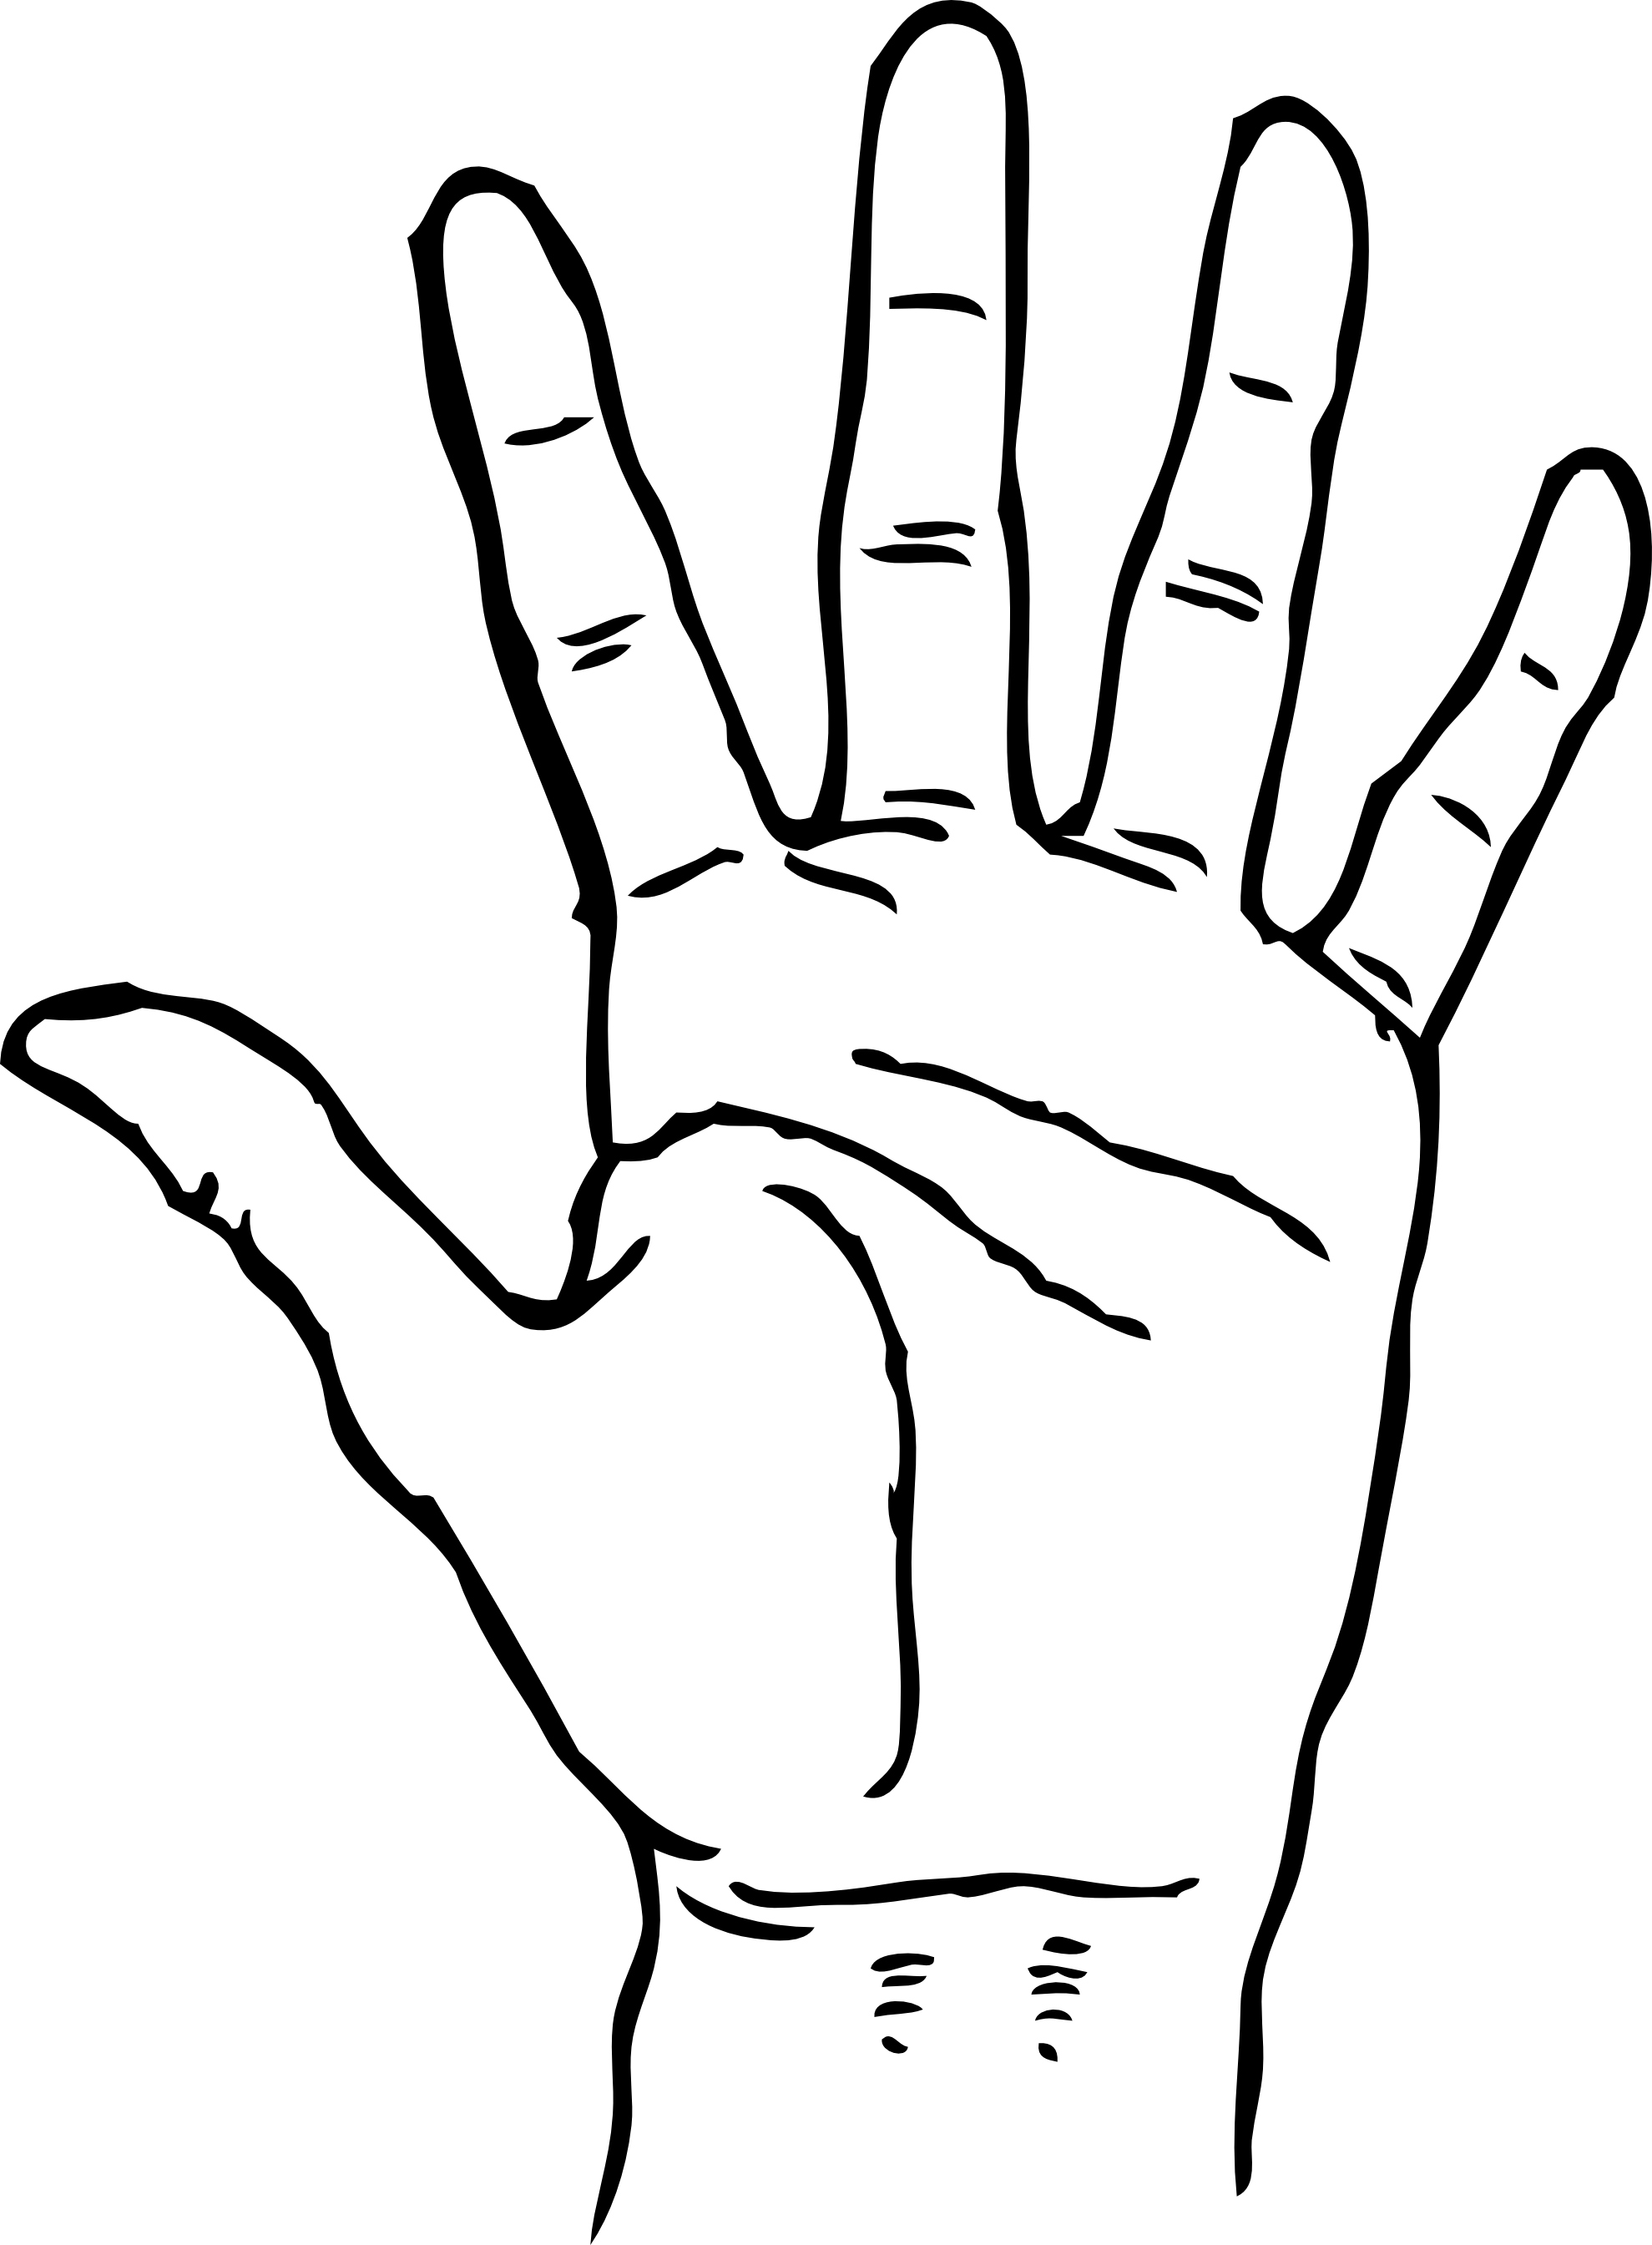 Hands Clipart Black And White.